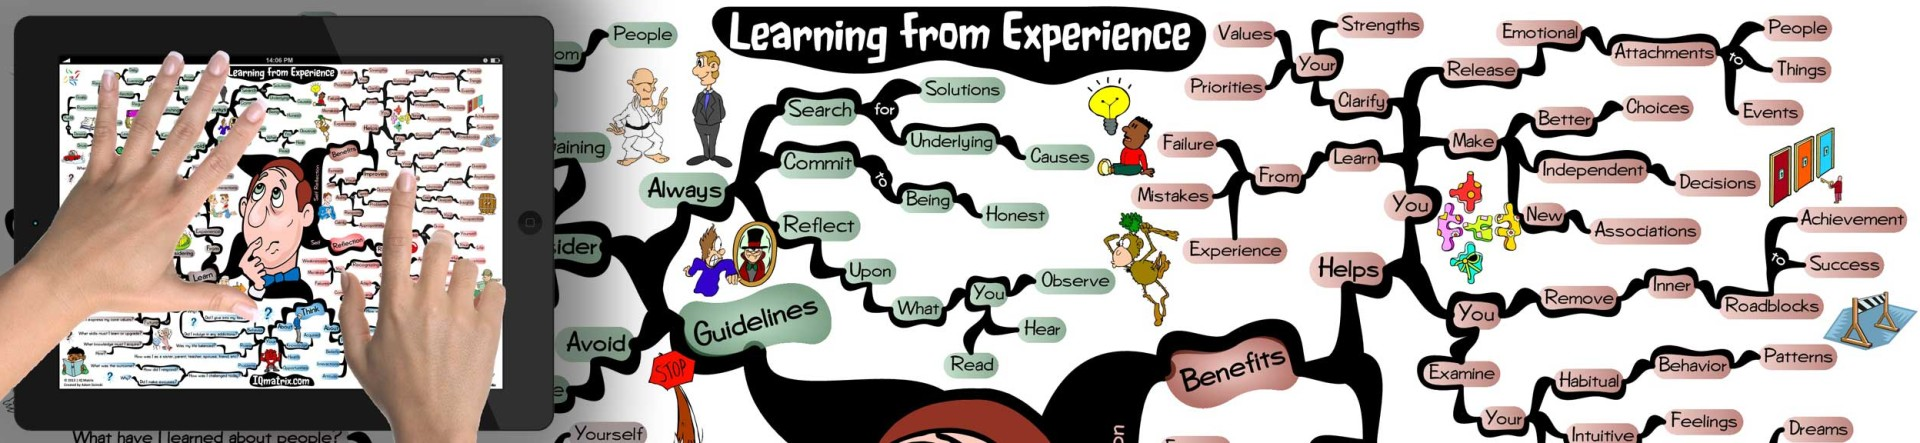 Emotional clipart self reflection Reflection: How Experience Make the